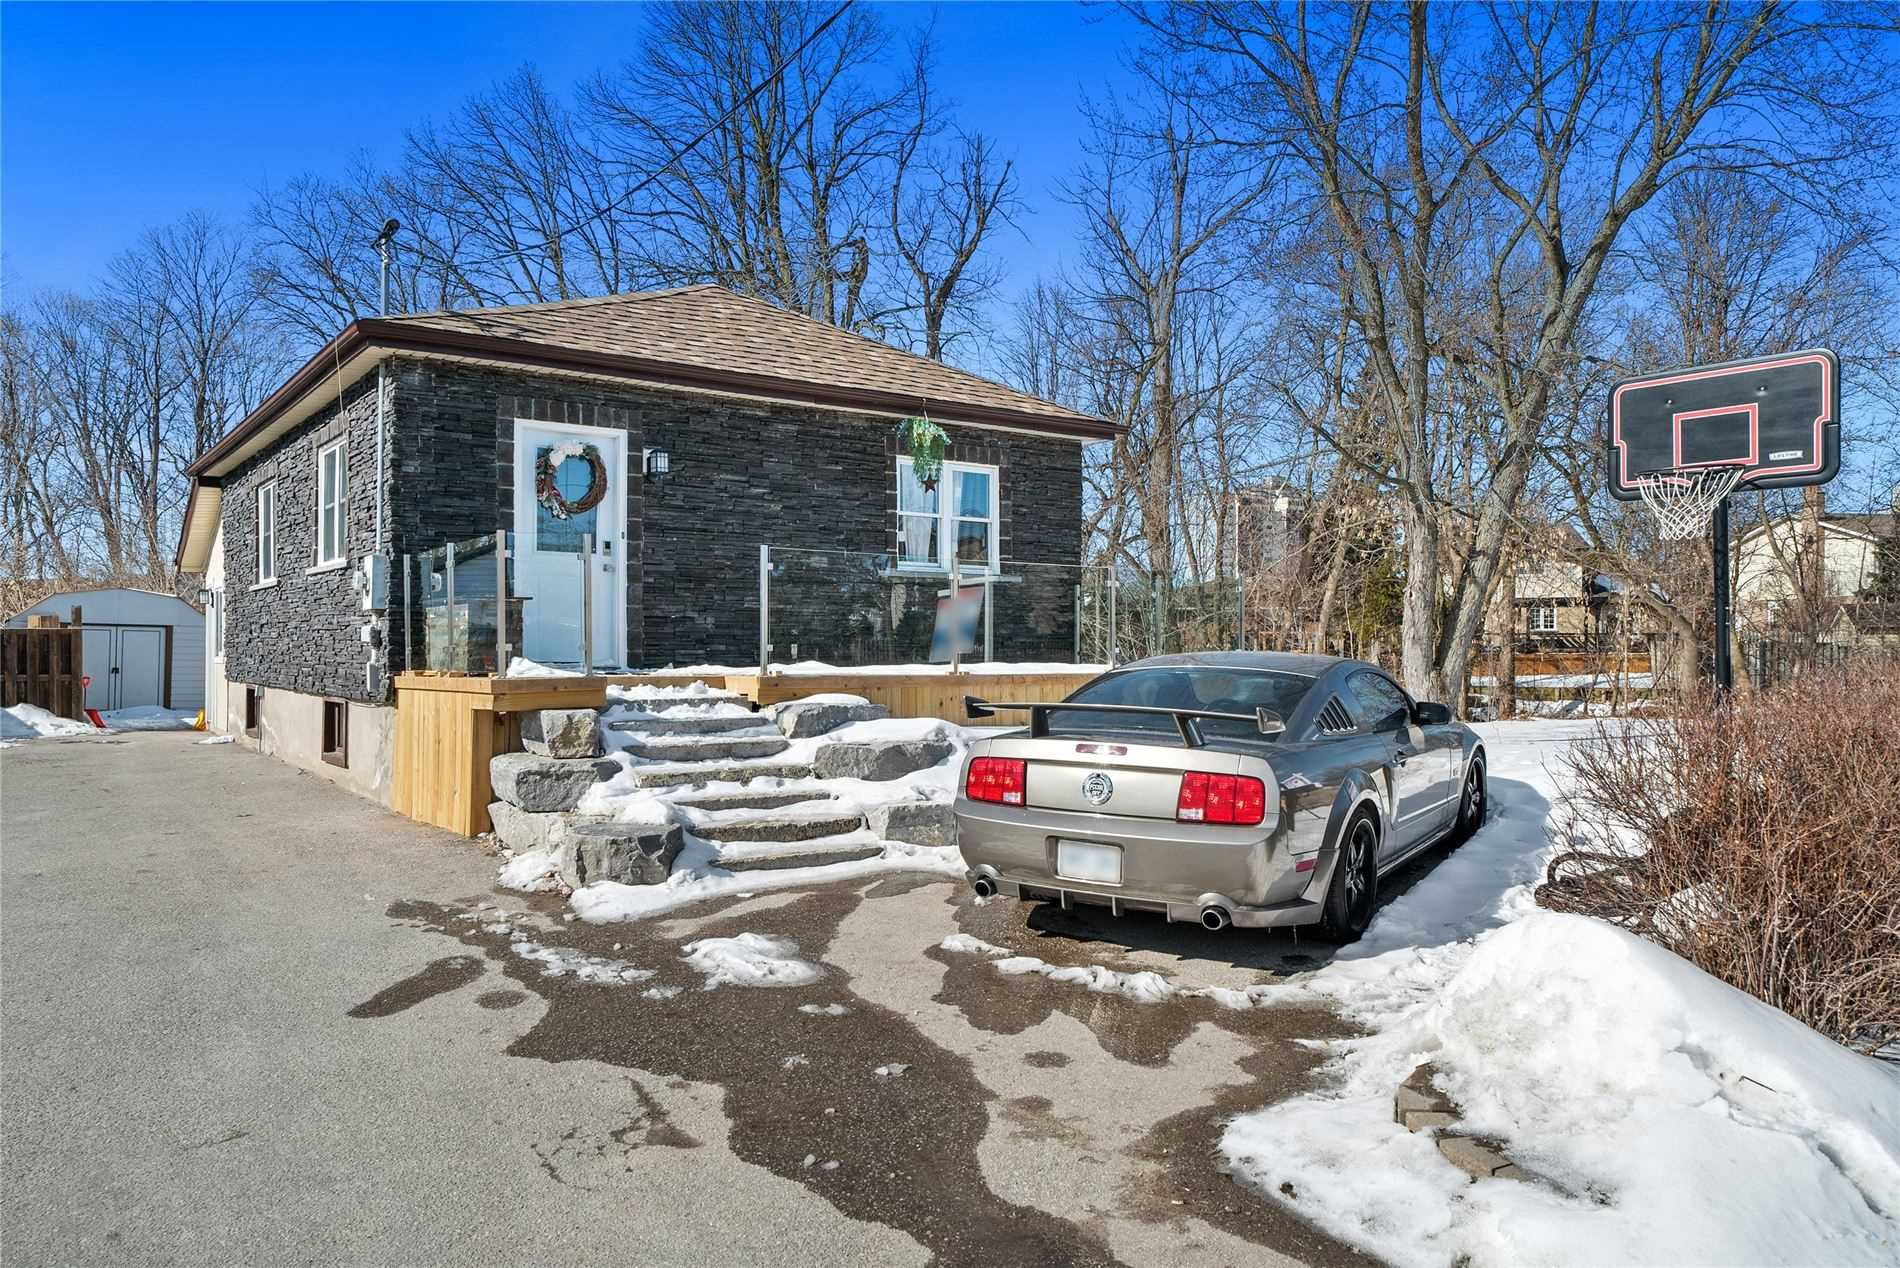 Main Photo: 1114 N Ritson Road in Oshawa: Centennial House (Bungalow) for sale : MLS®# E4720225